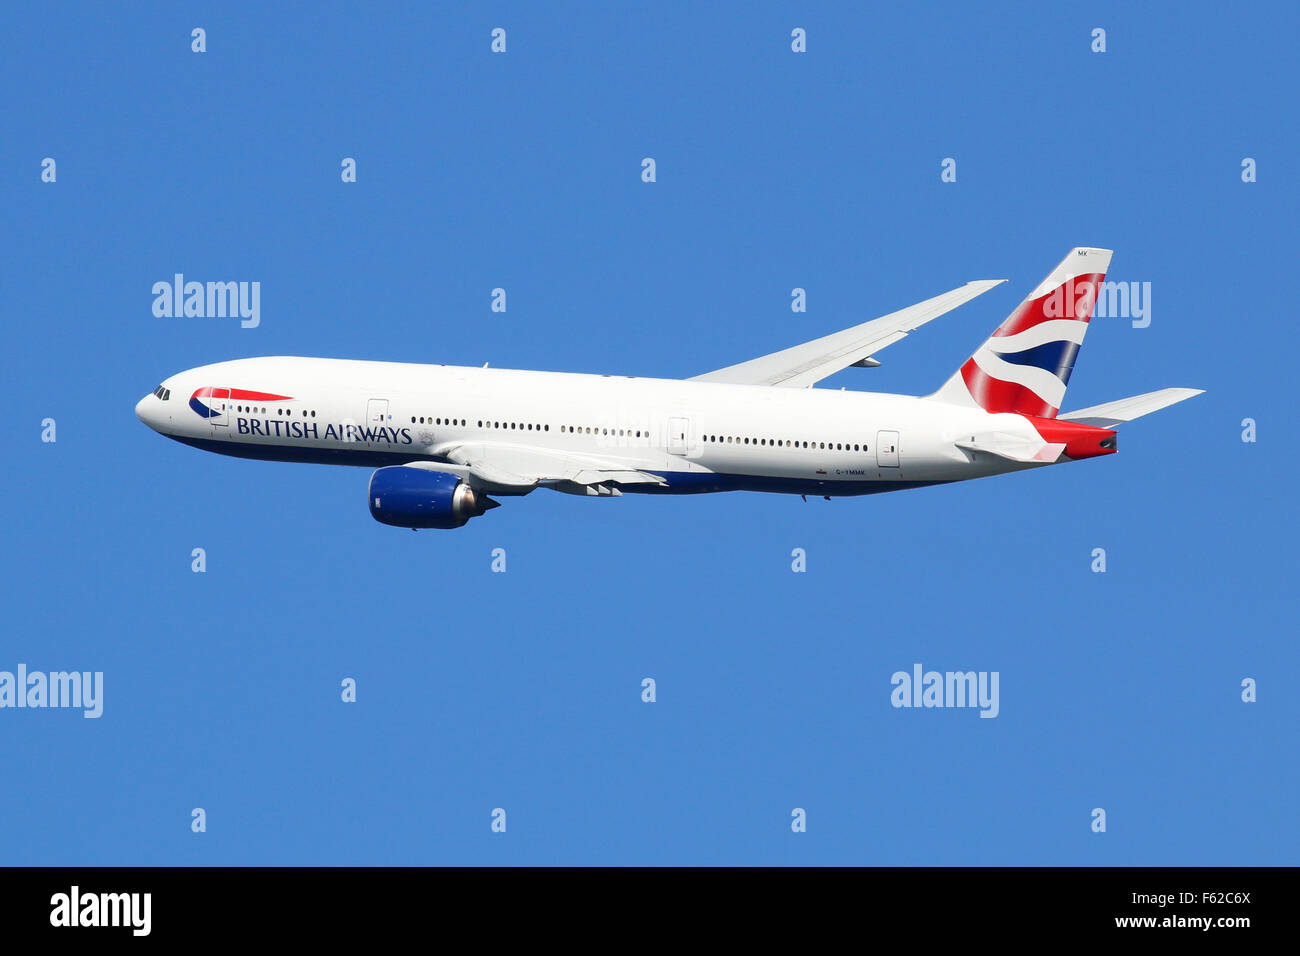 London Heathrow, United Kingdom - August 28, 2015: A British Airways Boeing 777 with the registration G-YMMK taking - Stock Image